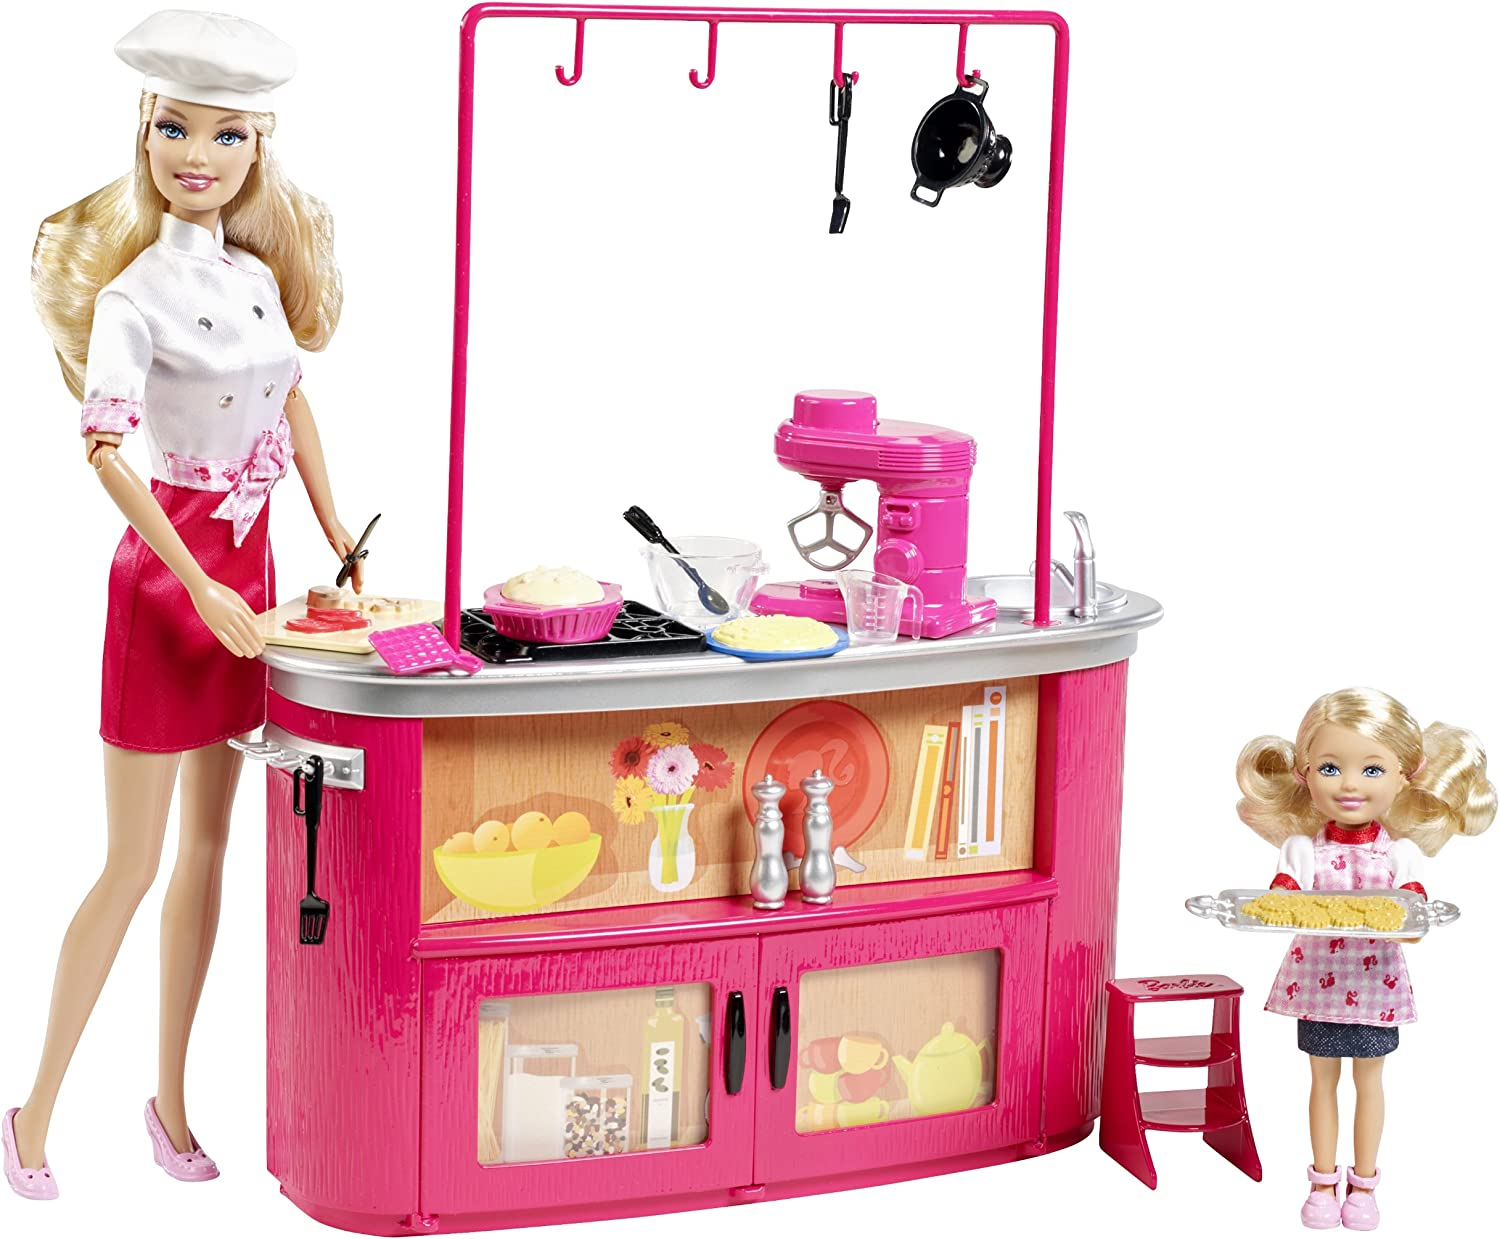 Sale price Barbie I Can Max 70% OFF Be Doll Playset Teacher Cooking